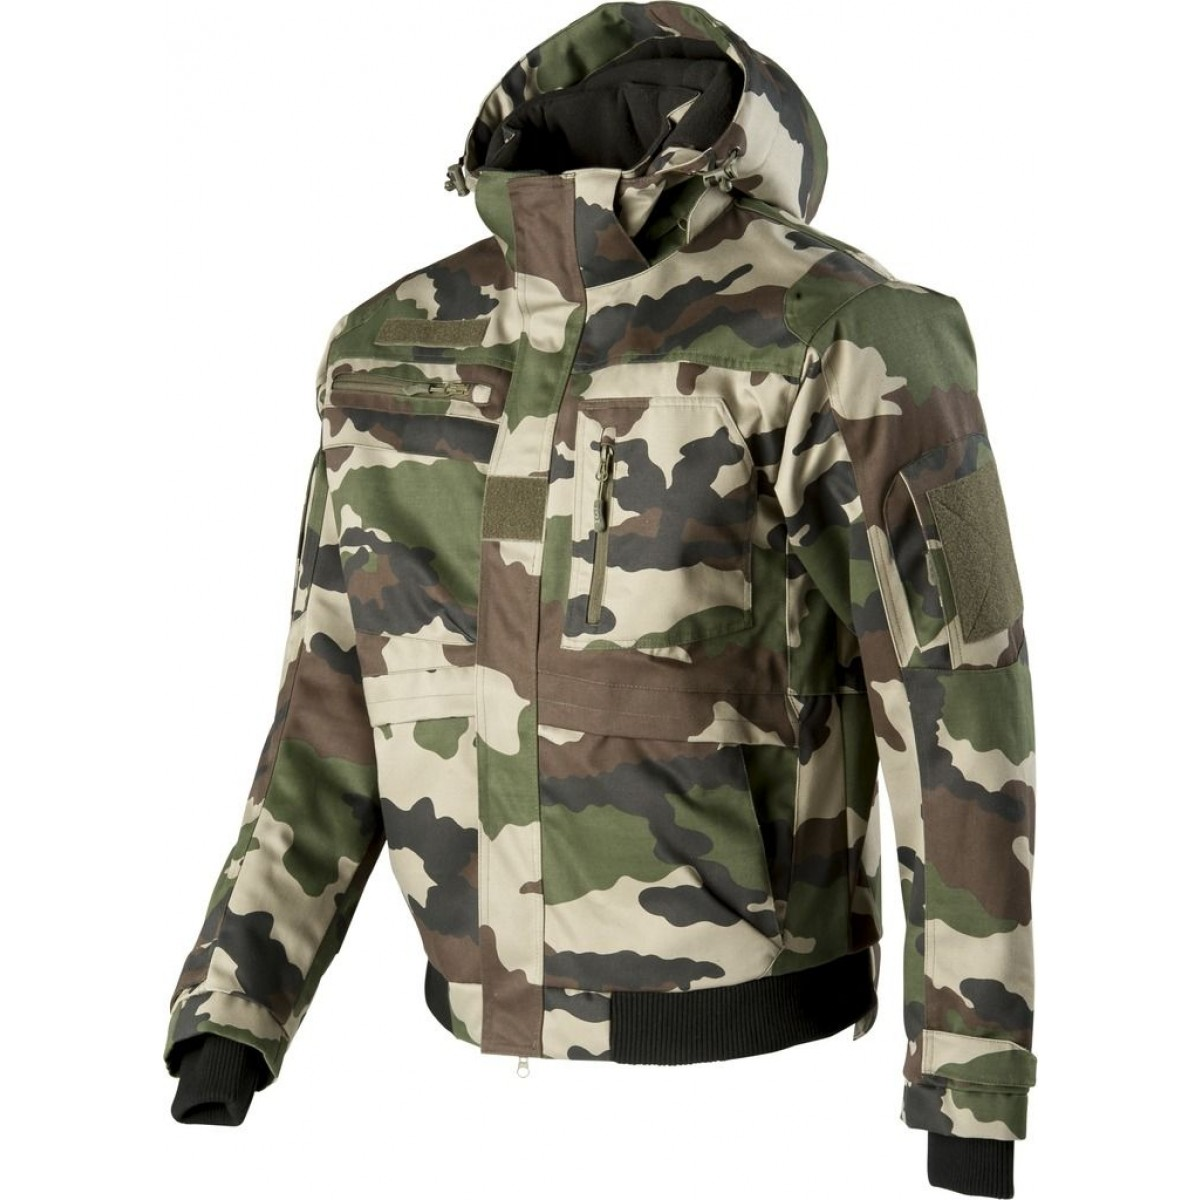 Homme Homme Parka Topiwall Topiwall Militaire Militaire Militaire Topiwall Homme Militaire Parka Parka Homme Parka 55TrSgq